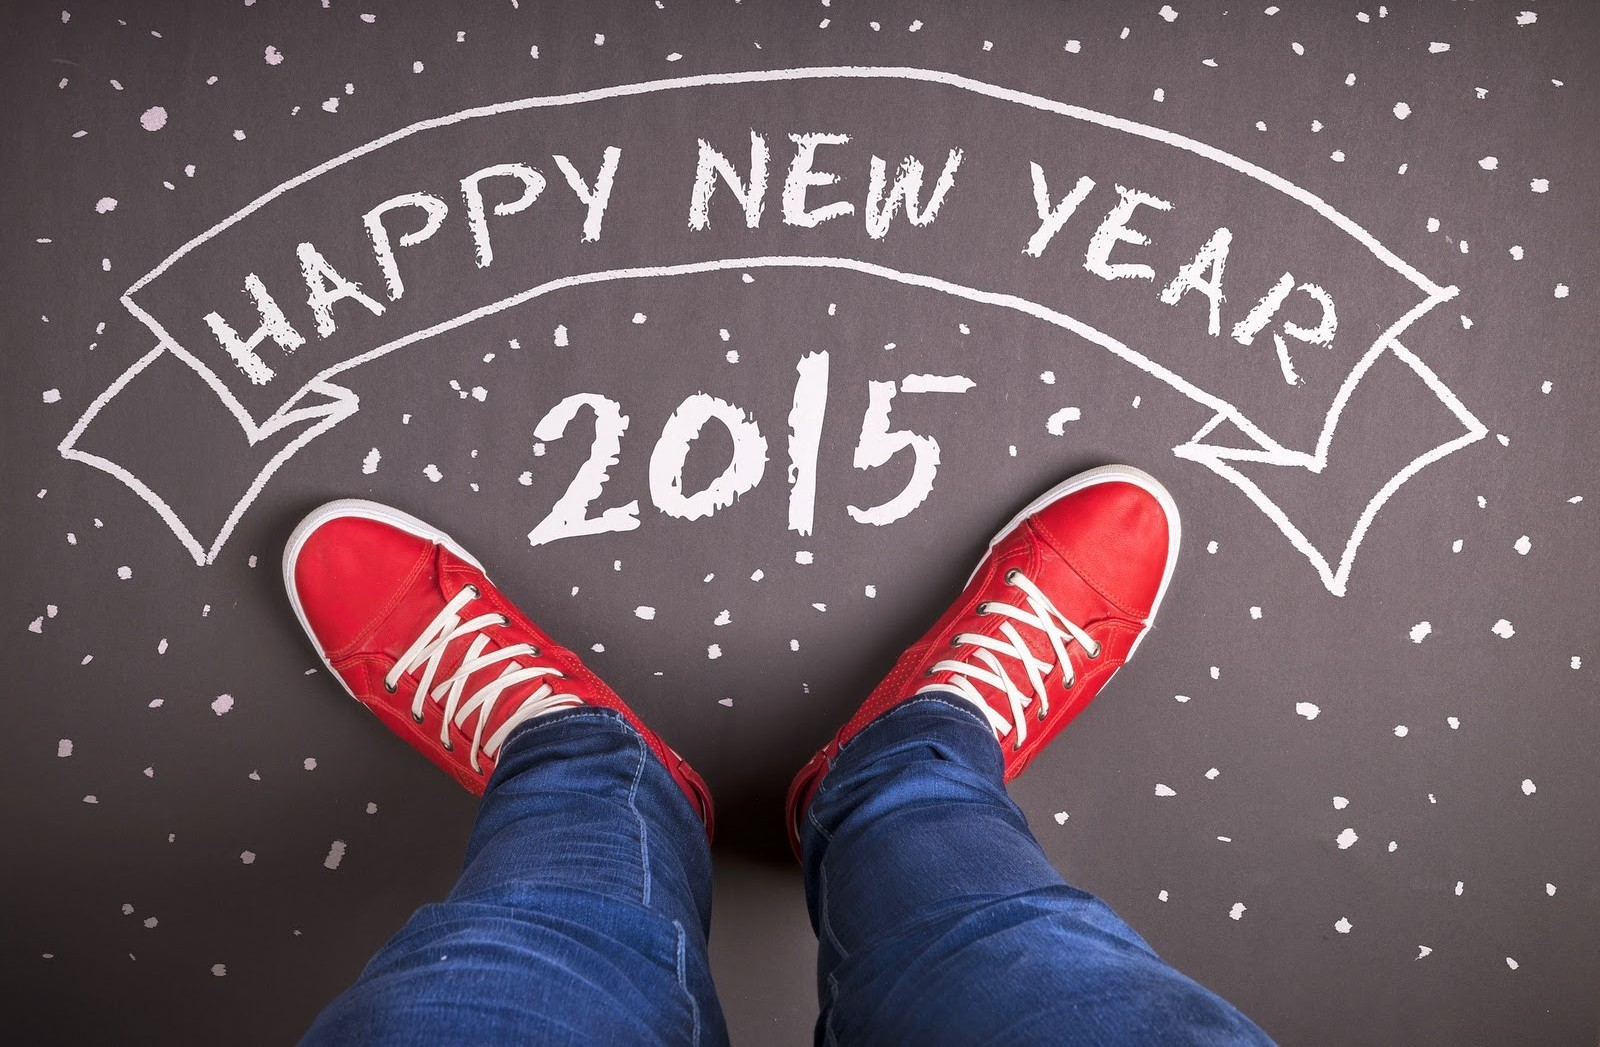 Happy-New-Year-2015-High-Quality-Image